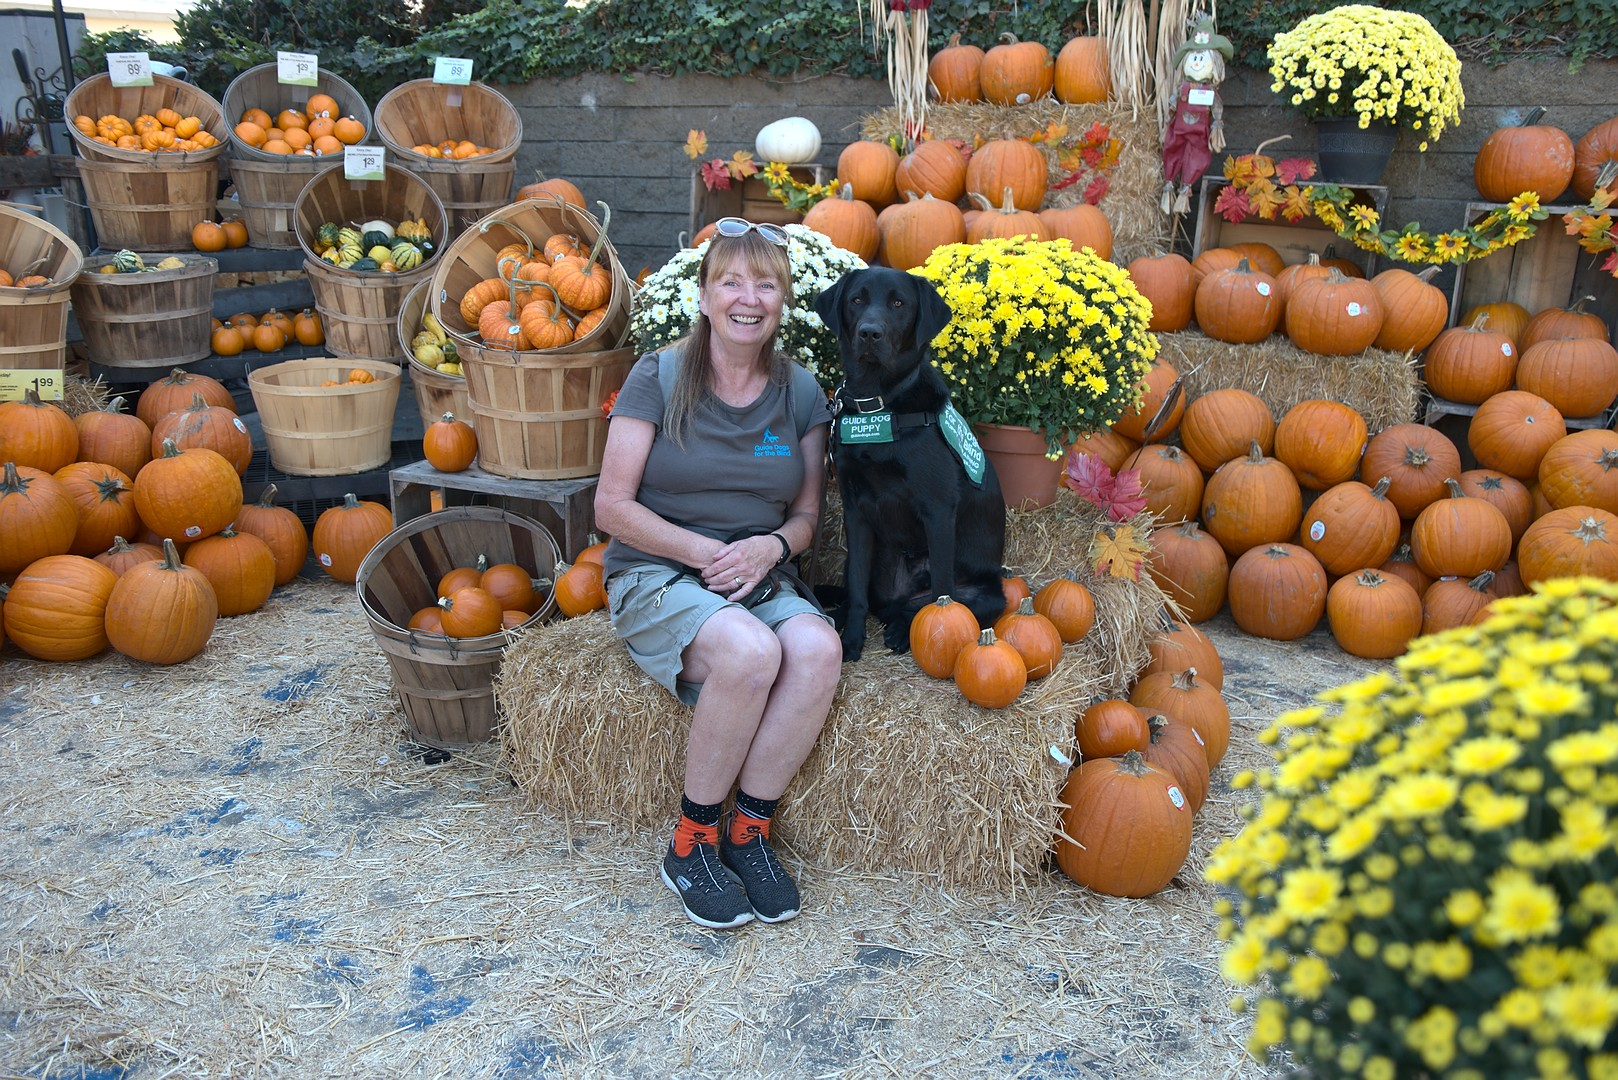 Brenda with Macklin at the Pumpkin Patch